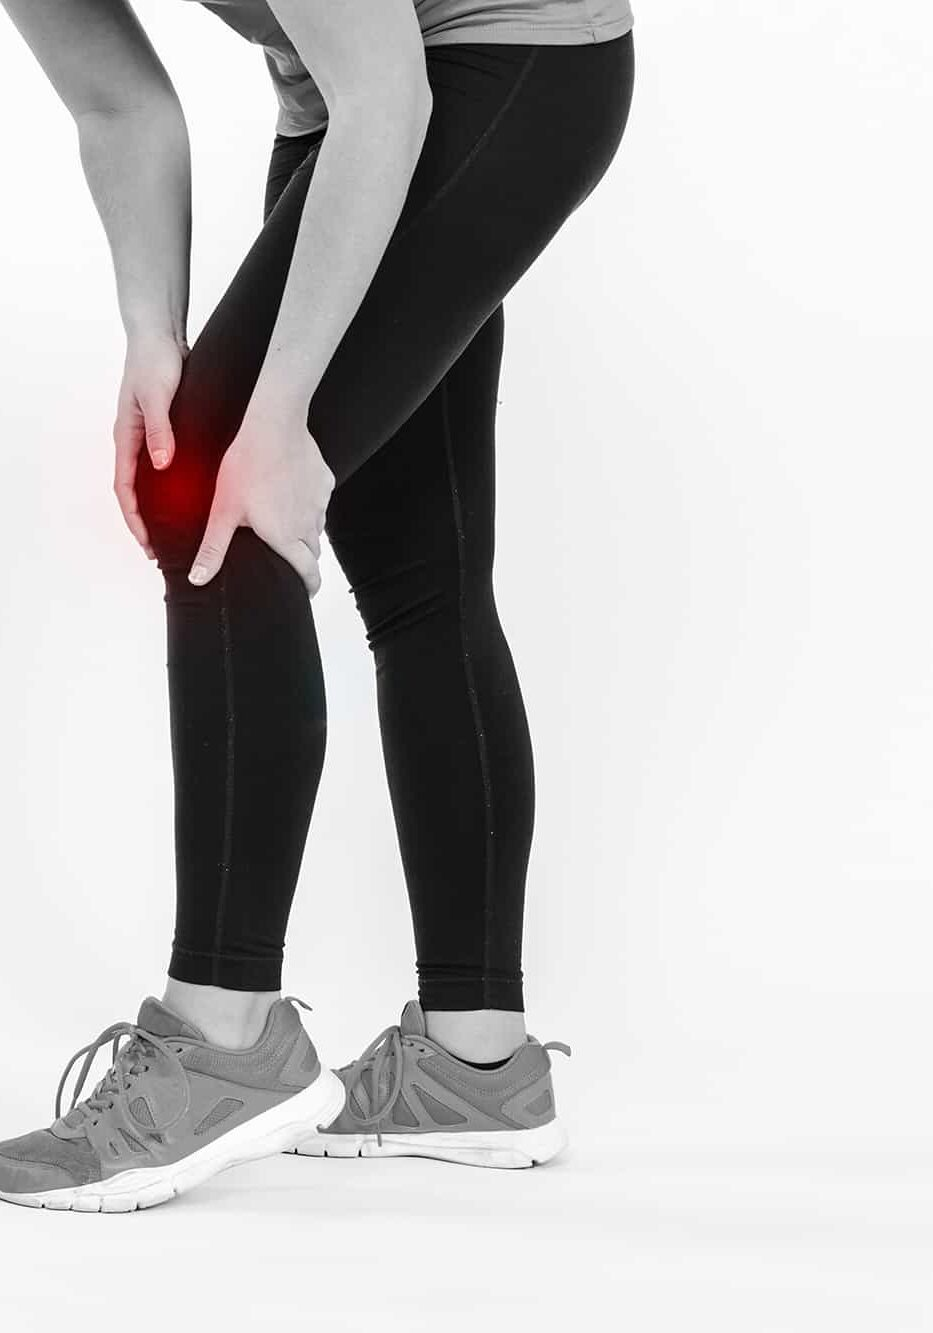 pain in knee